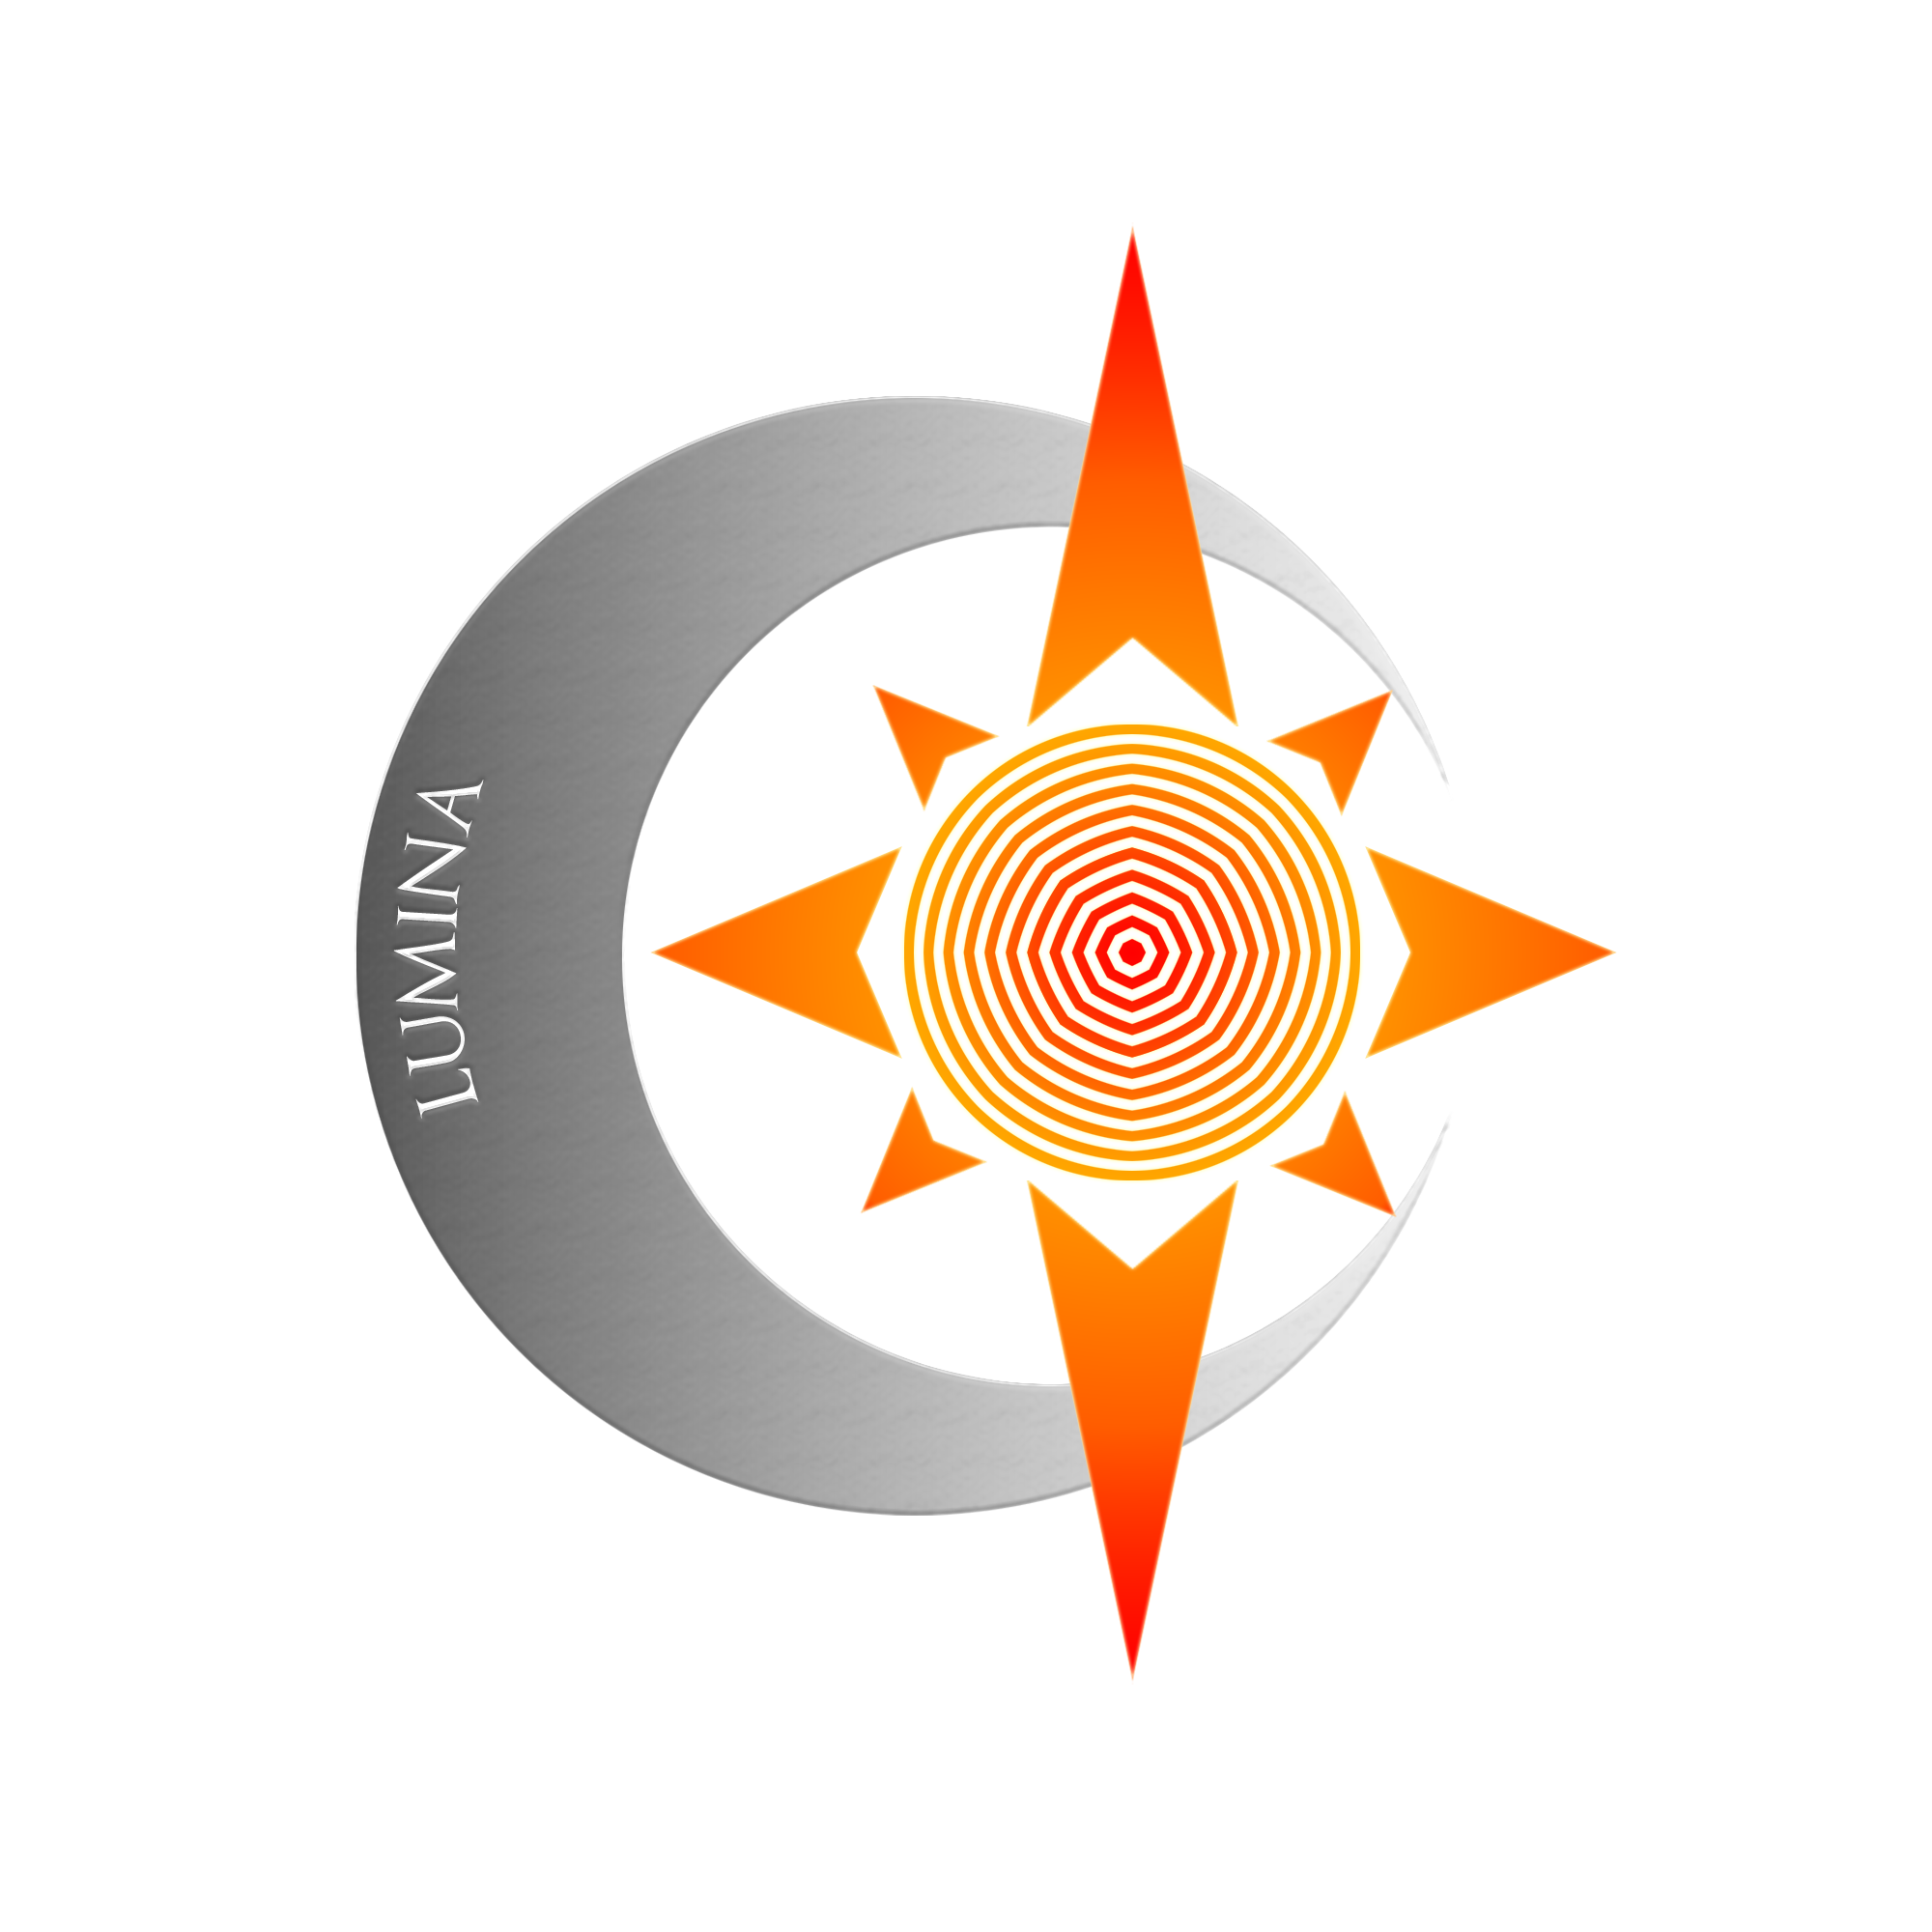 Compass Rose : LuminouStellar